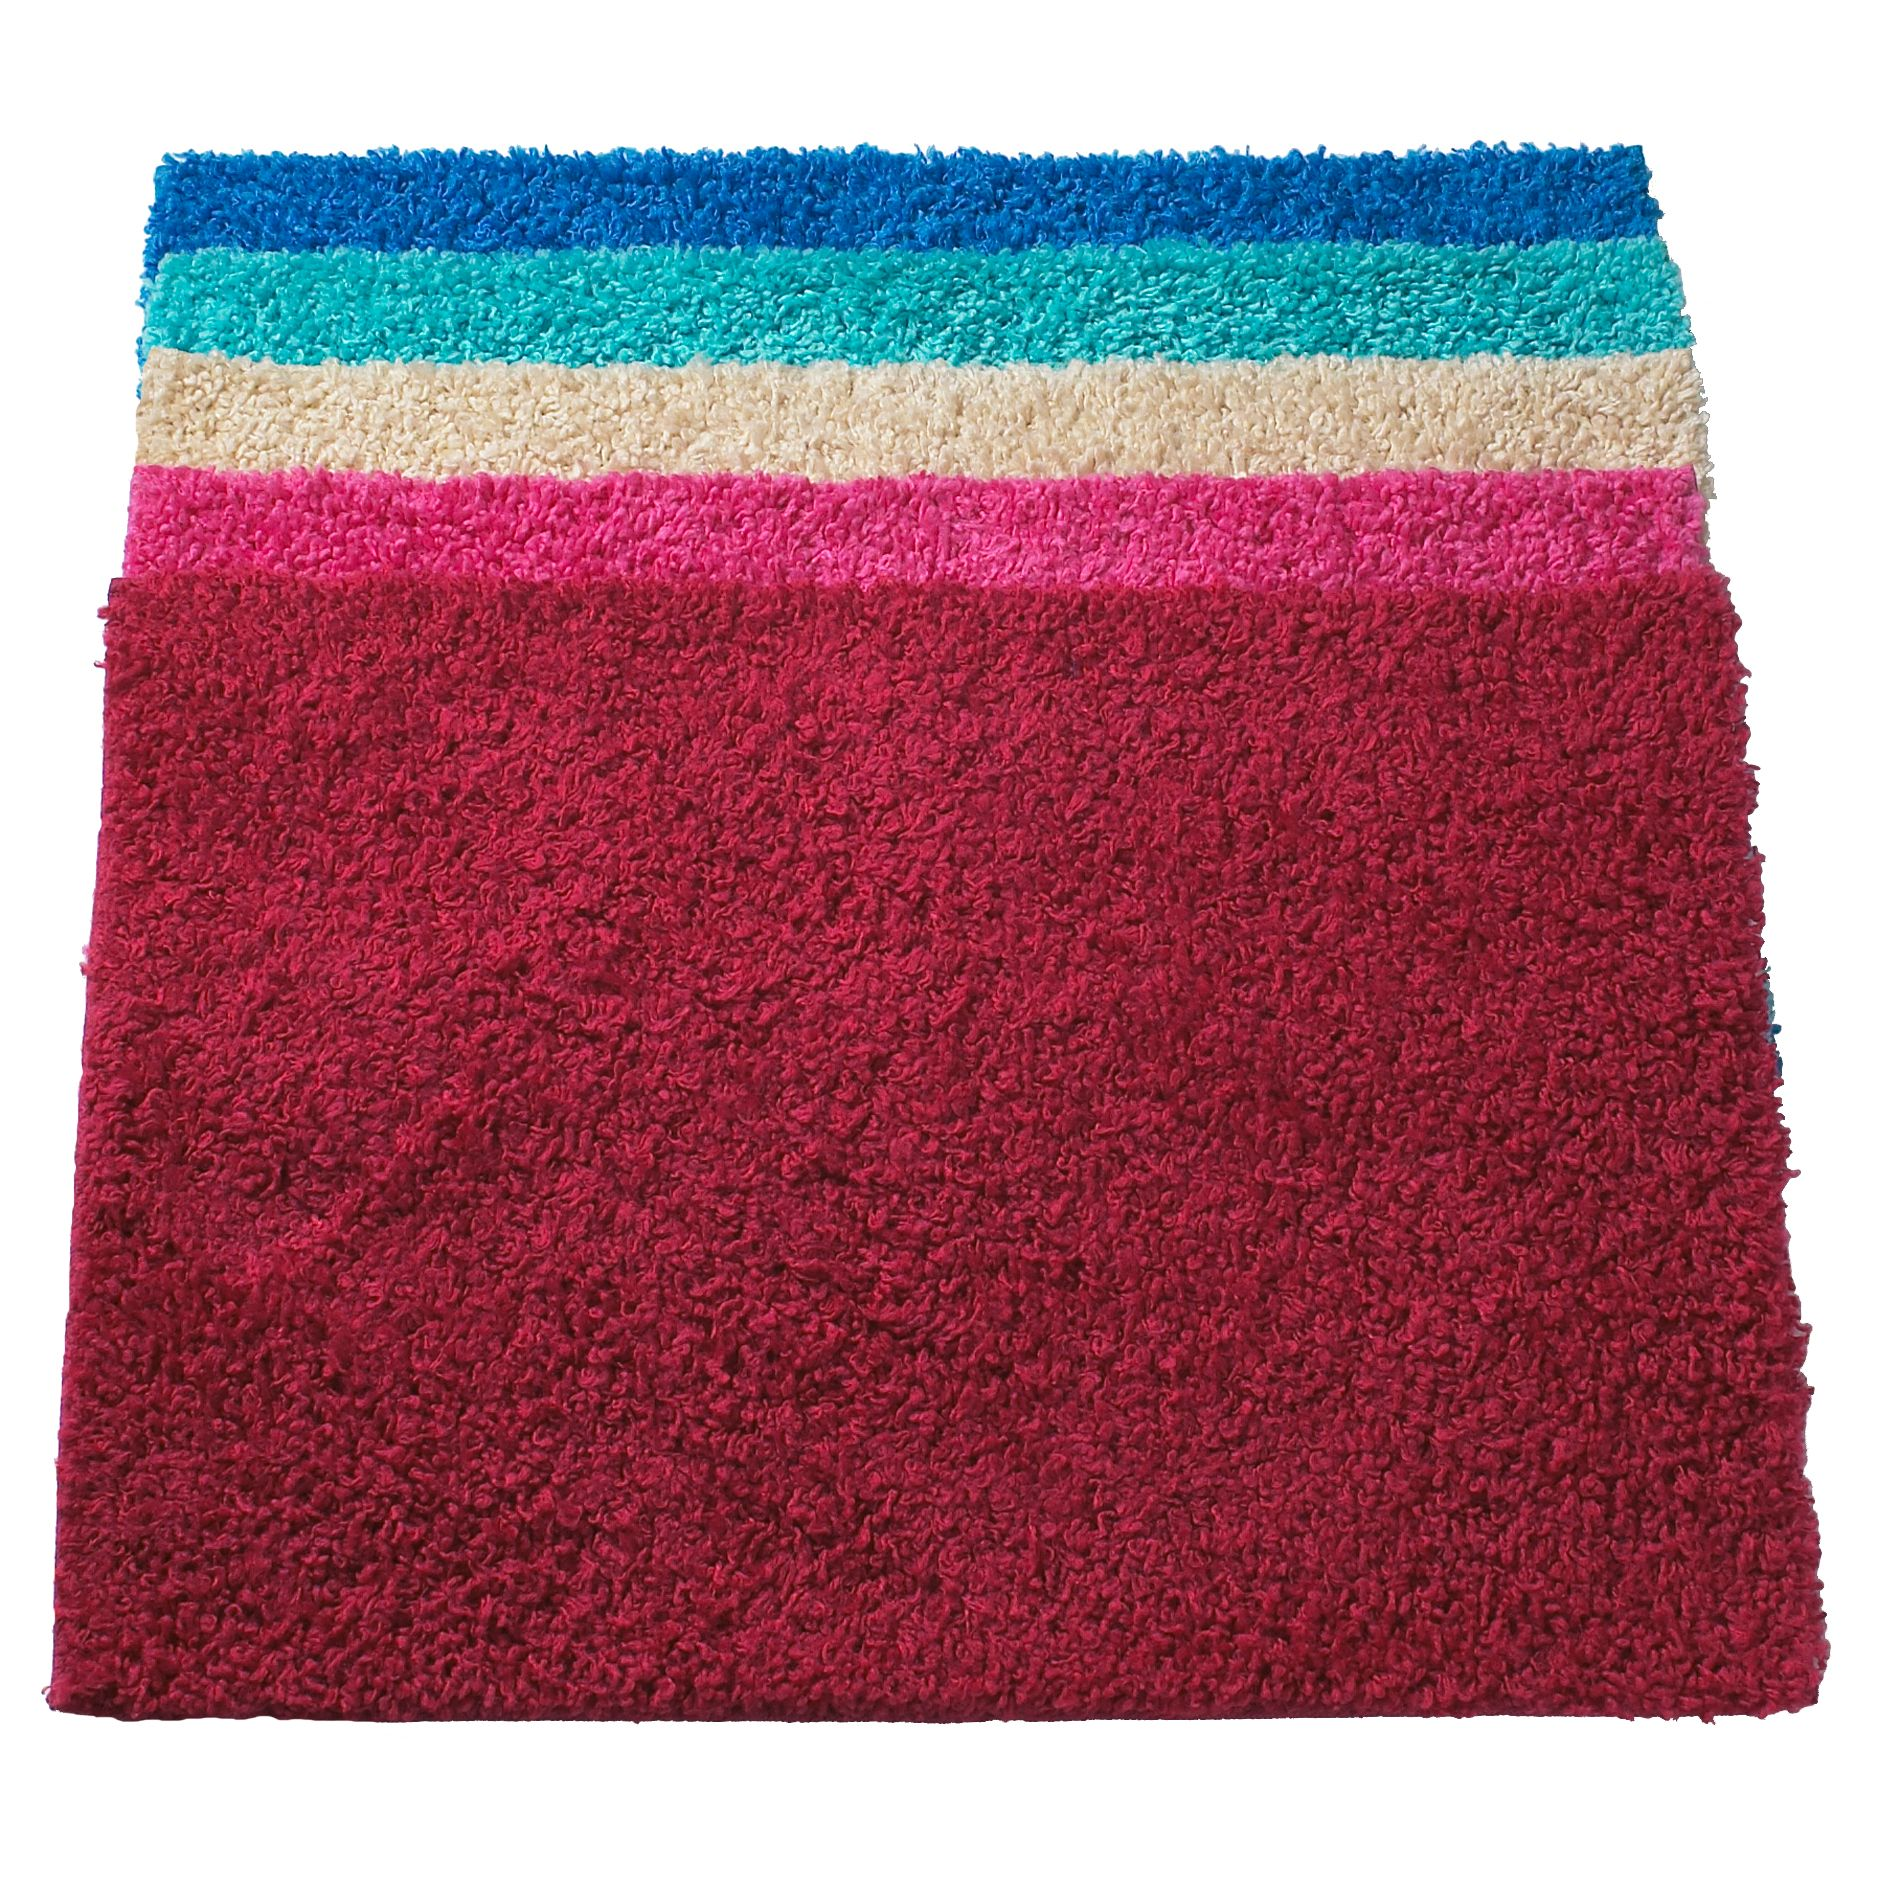 Manor Crinkle Bath Rugs 24 x 40